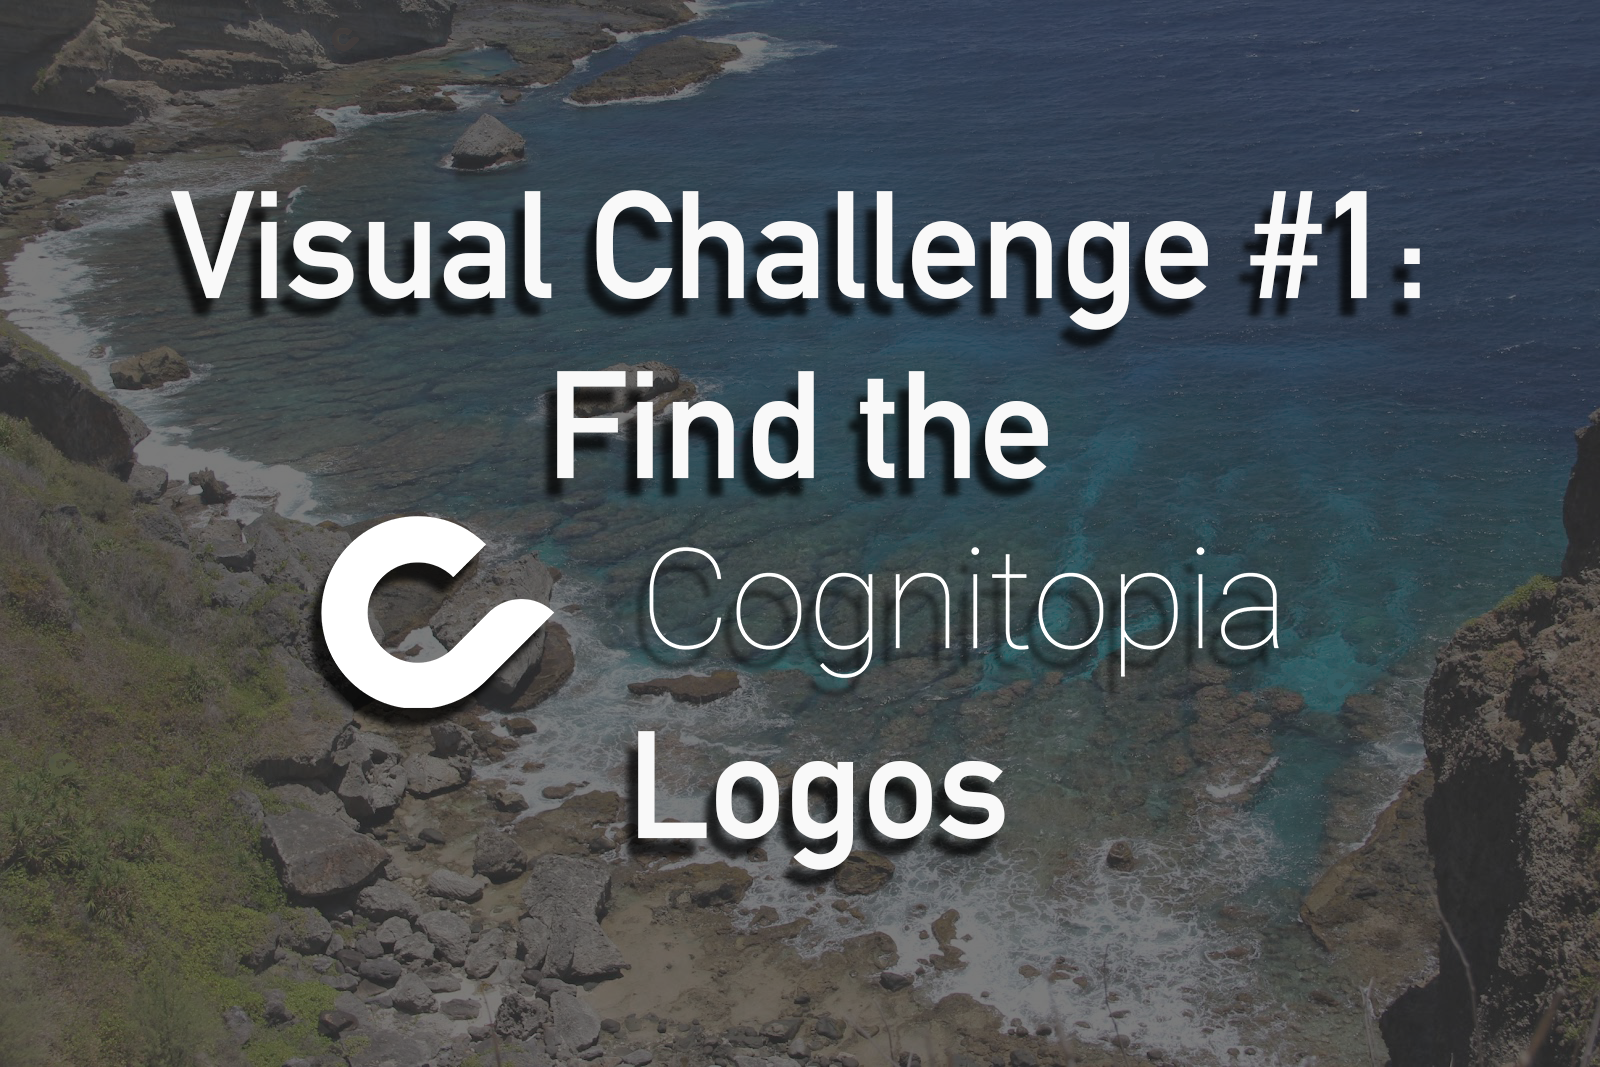 Image shows a title for a visual challenge from Cognitopia, hidden logos.